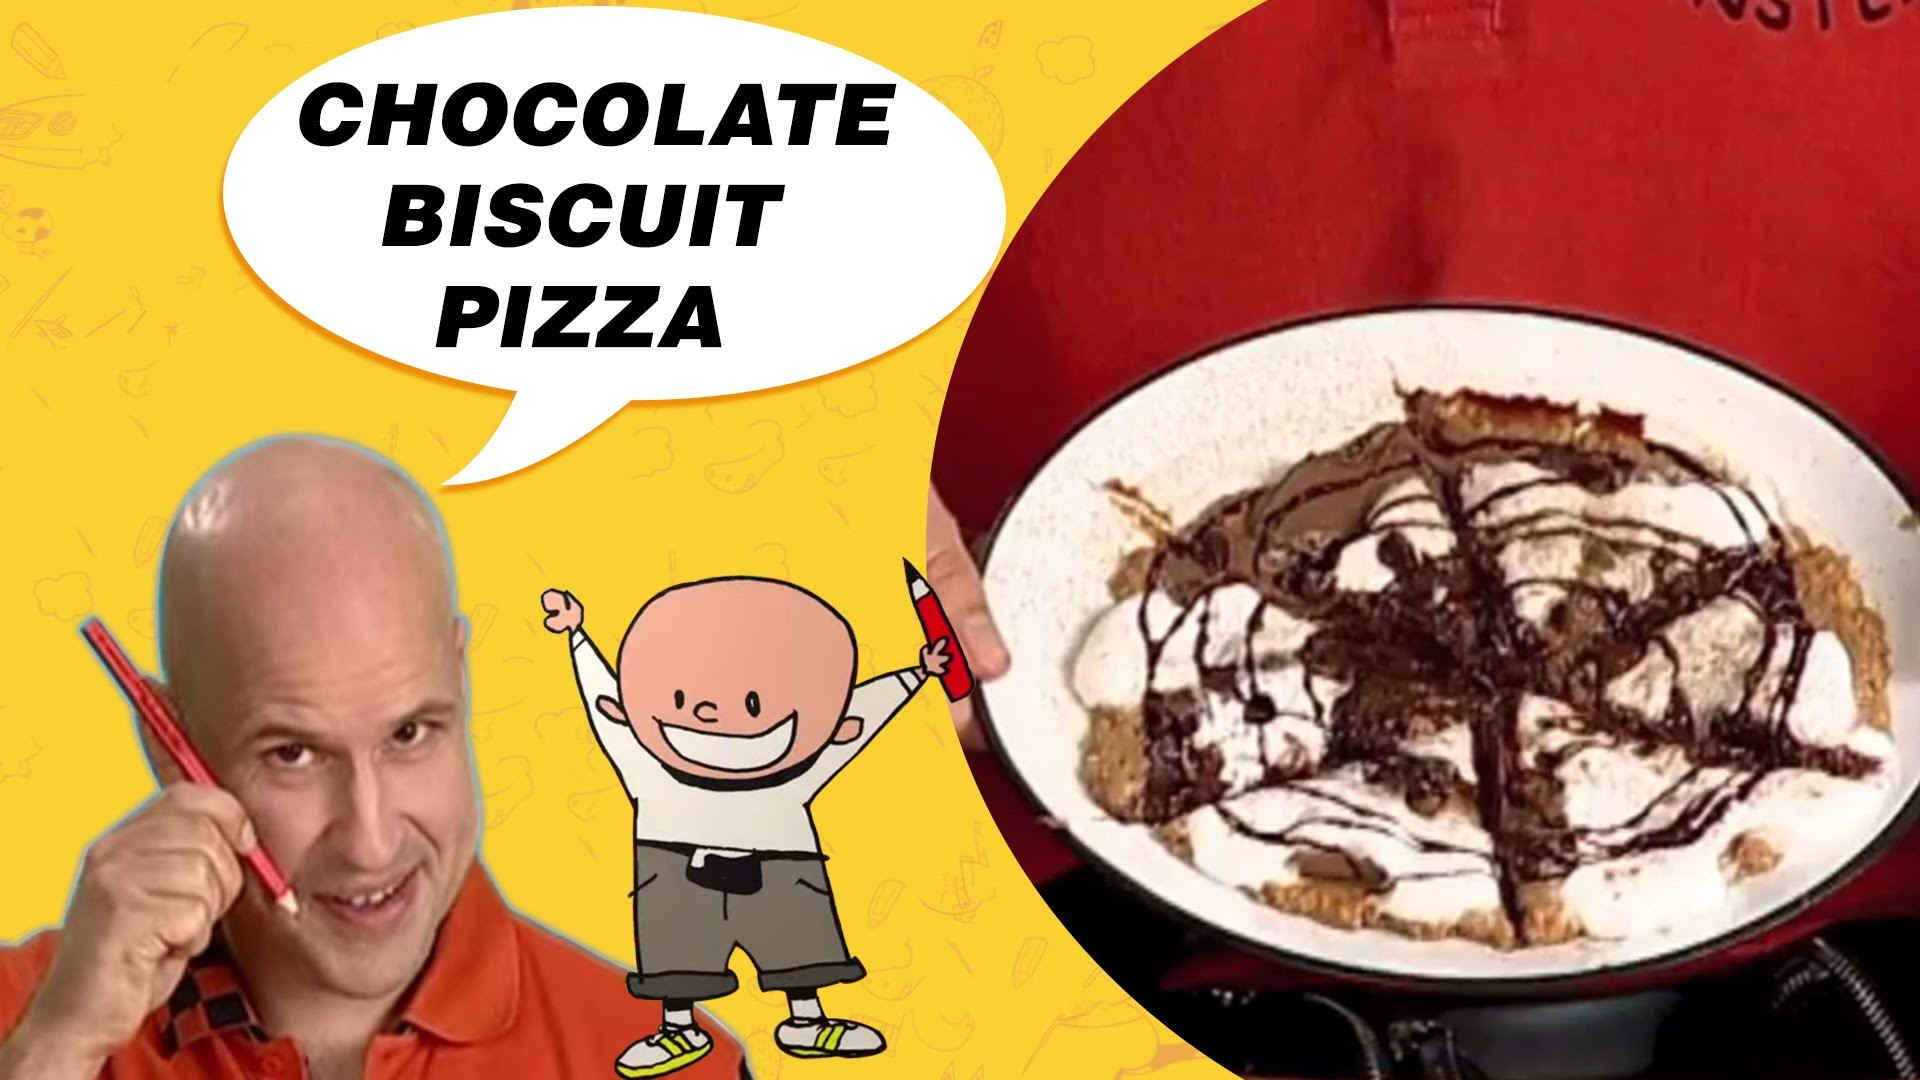 Crafts Ideas for Kids - Chocolate Biscuit Pizza | DIY on BoxYourSelf